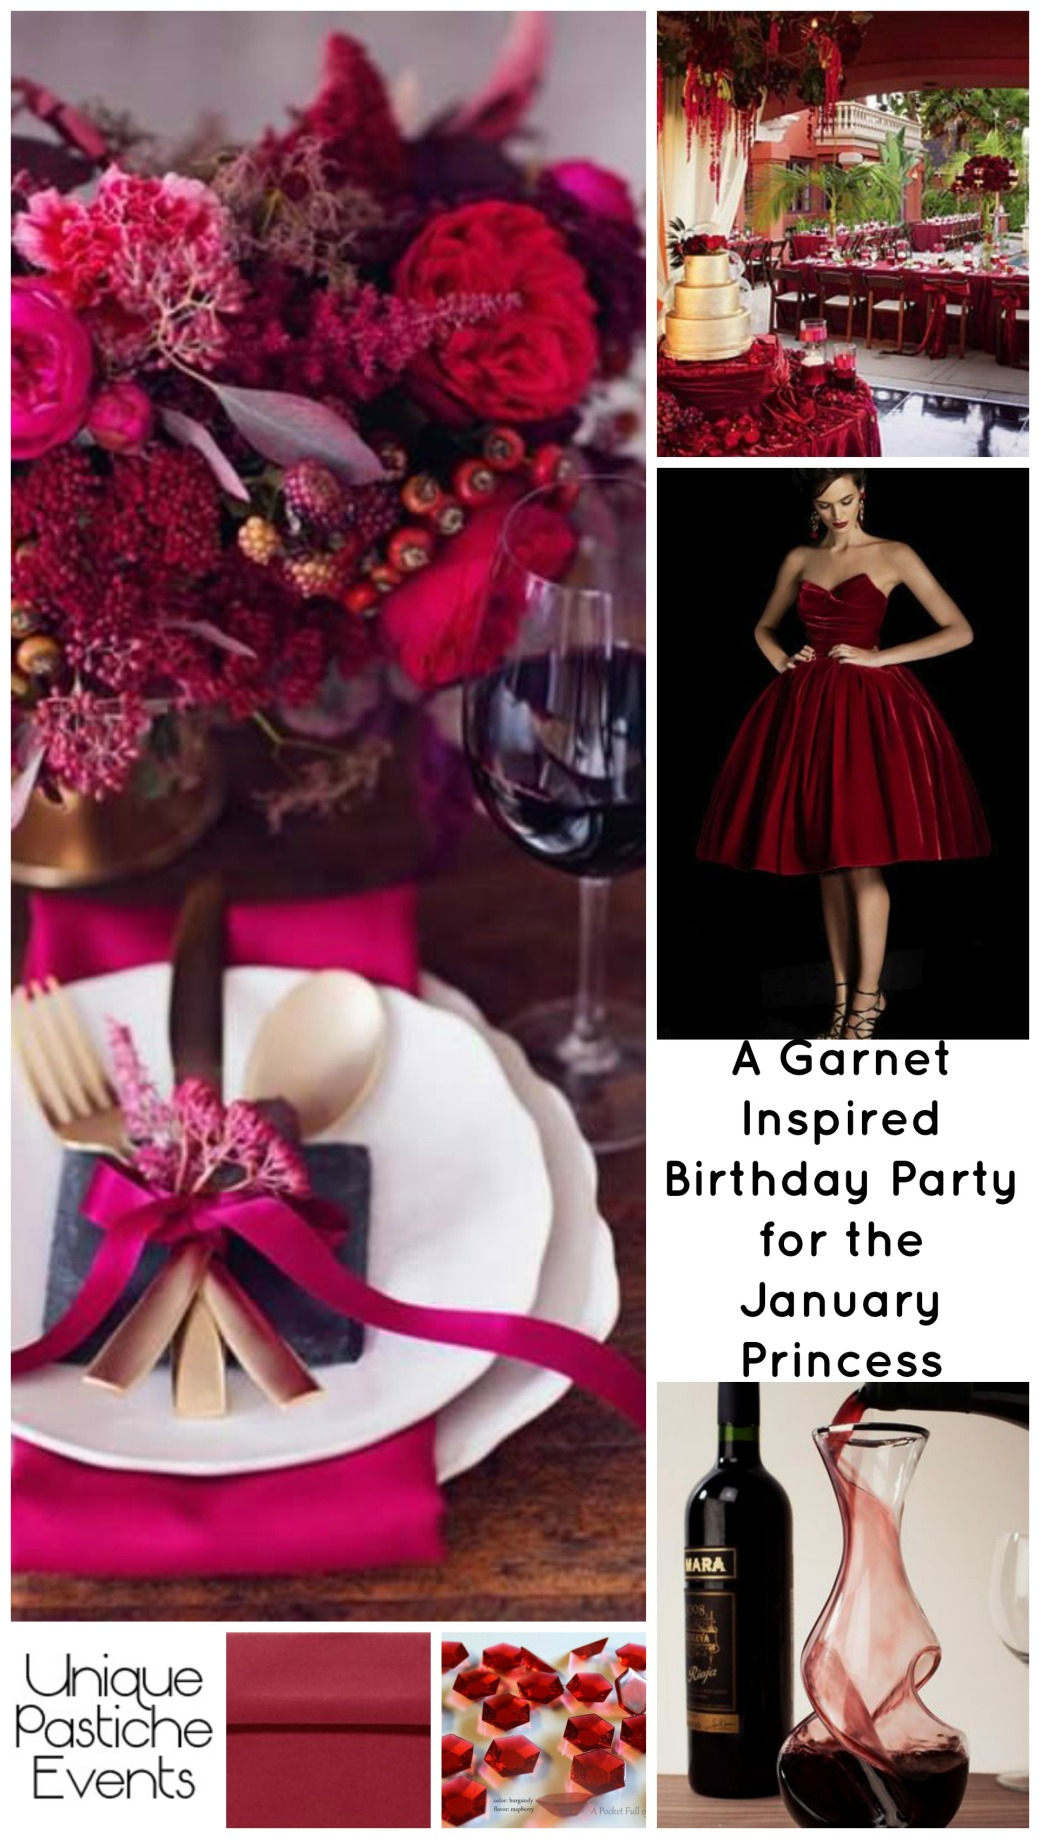 A Garnet Inspired Birthday Party for the January Princess by Unique Pastiche Events